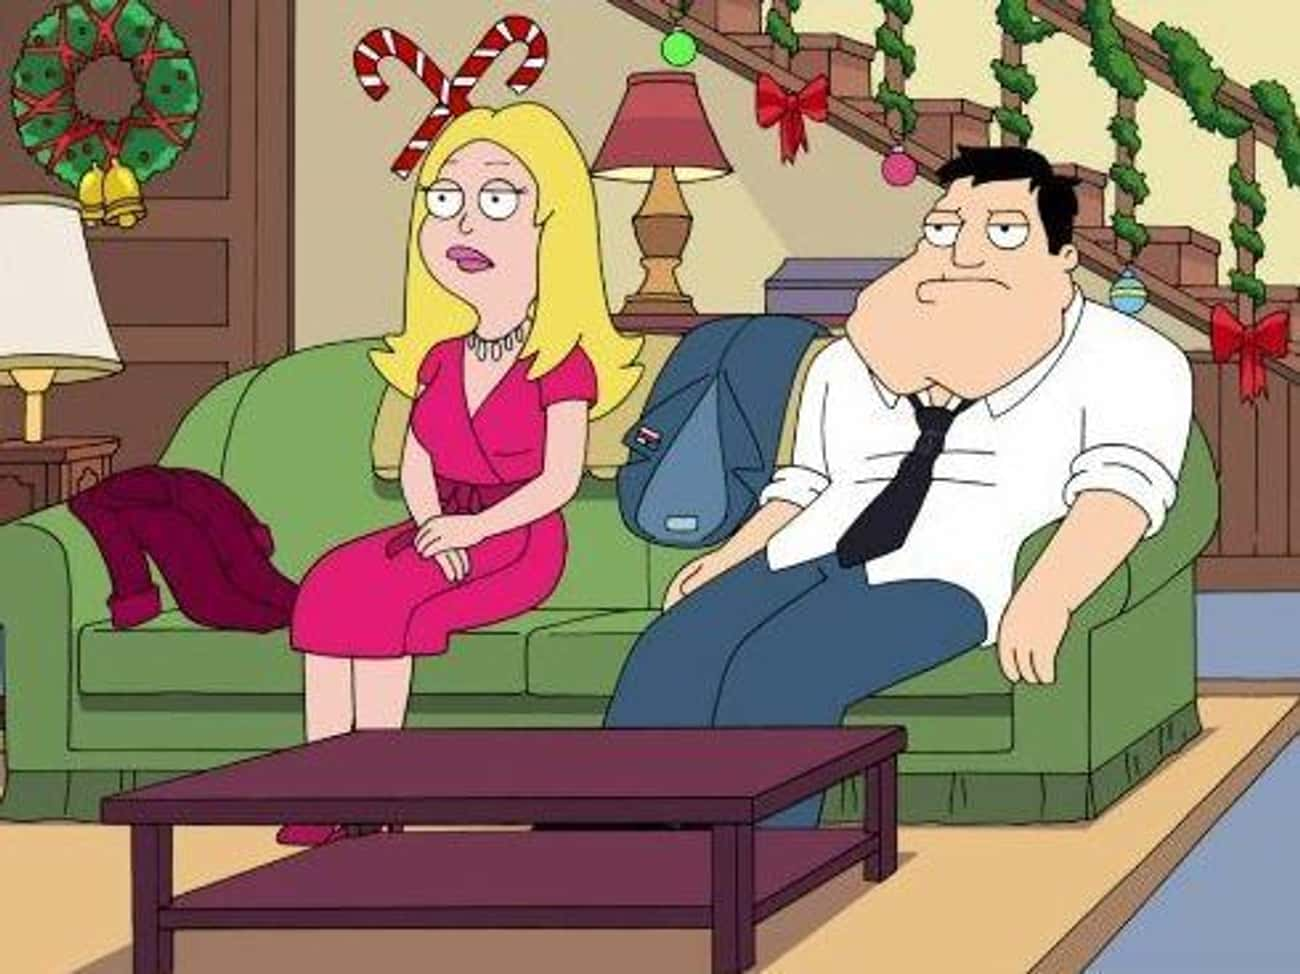 Rapture's Delight is listed (or ranked) 2 on the list The Best Christmas Episodes On 'American Dad!'